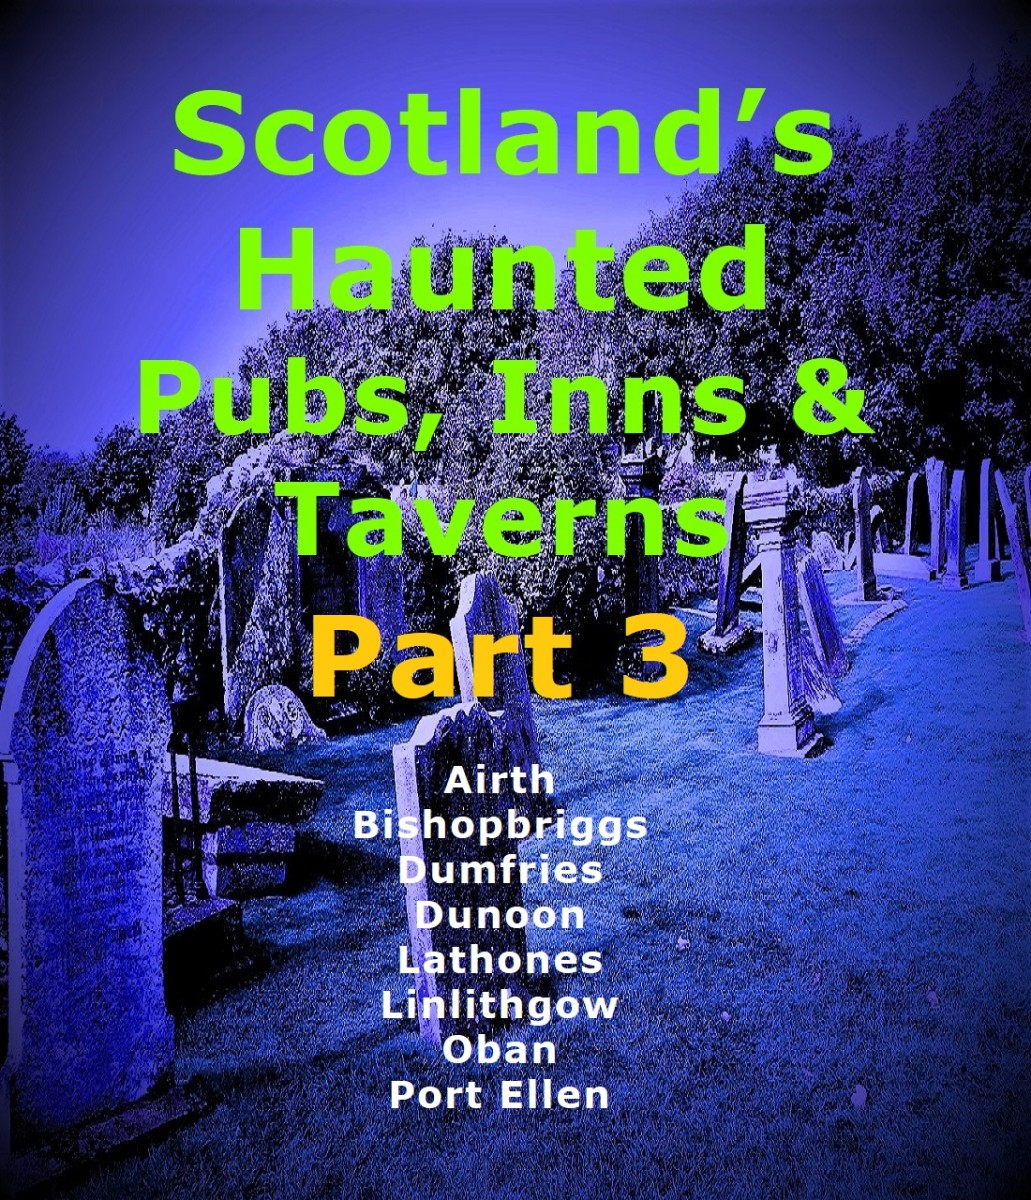 scotlands-haunted-pubs-inns-and-taverns-part-3